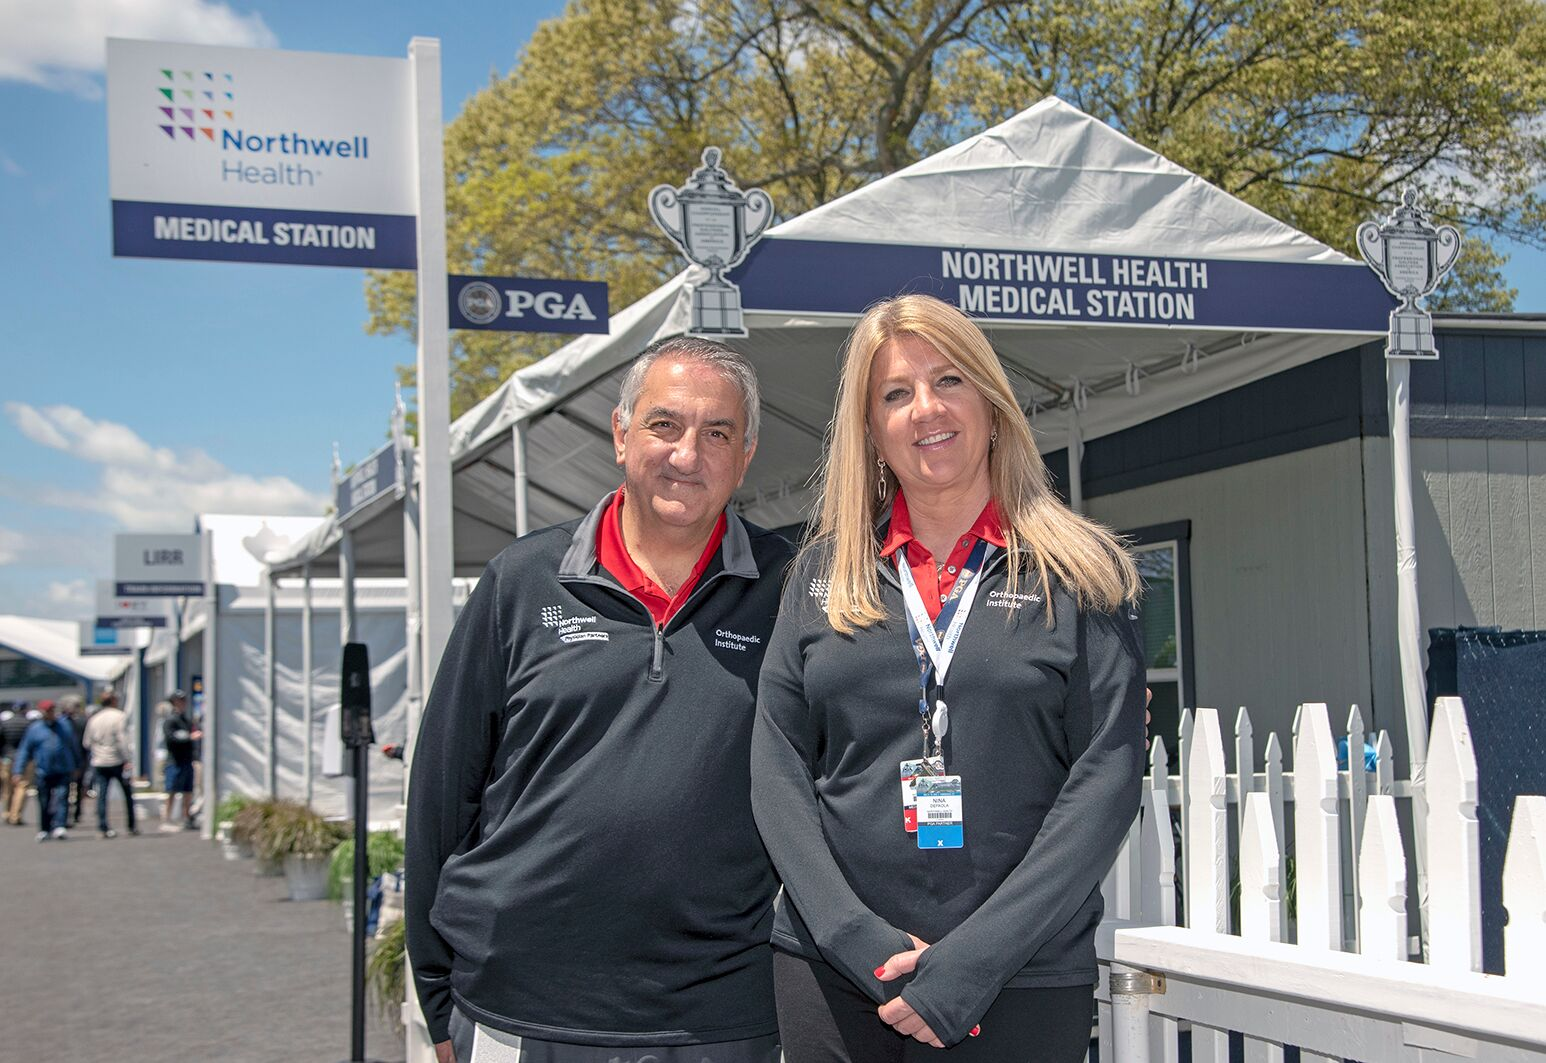 Thomas Mauri, MD, and Nina DePaola, PT, represent Northwell at the PGA Championship.